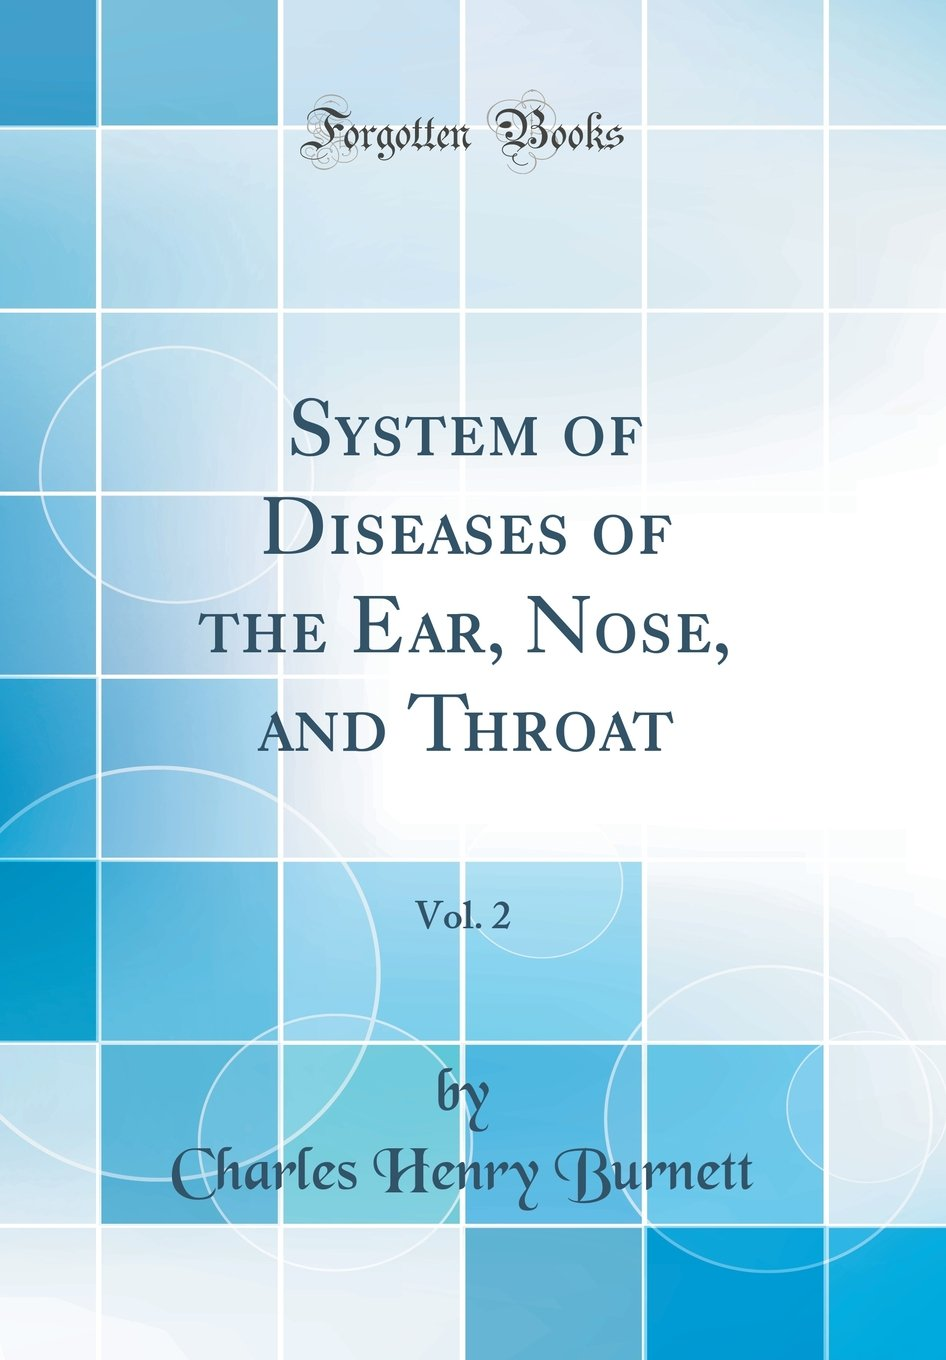 System of Diseases of the Ear, Nose, and Throat, Vol. 2 (Classic Reprint) ebook